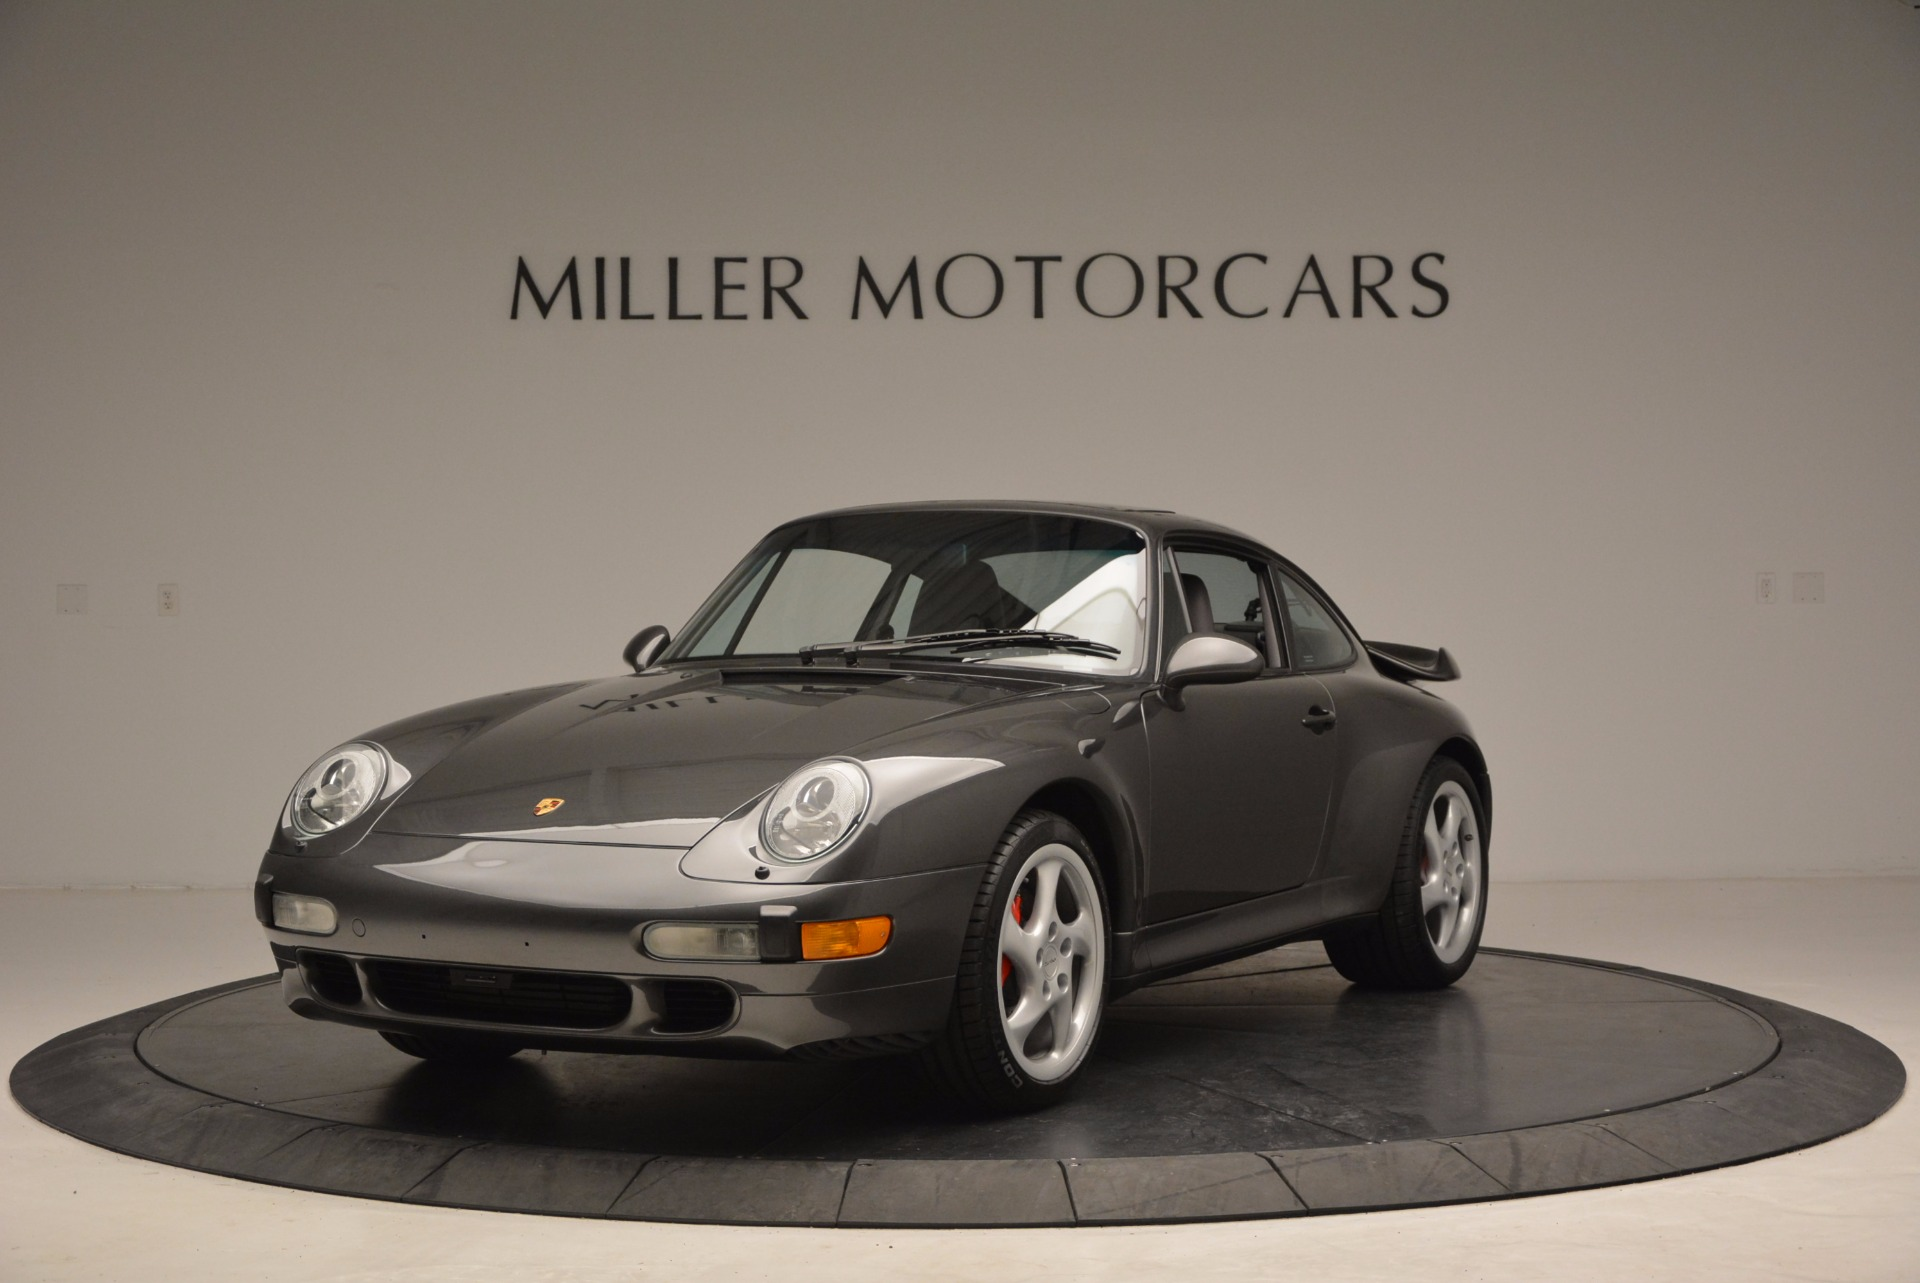 Used 1996 Porsche 911 Turbo for sale Sold at Bentley Greenwich in Greenwich CT 06830 1